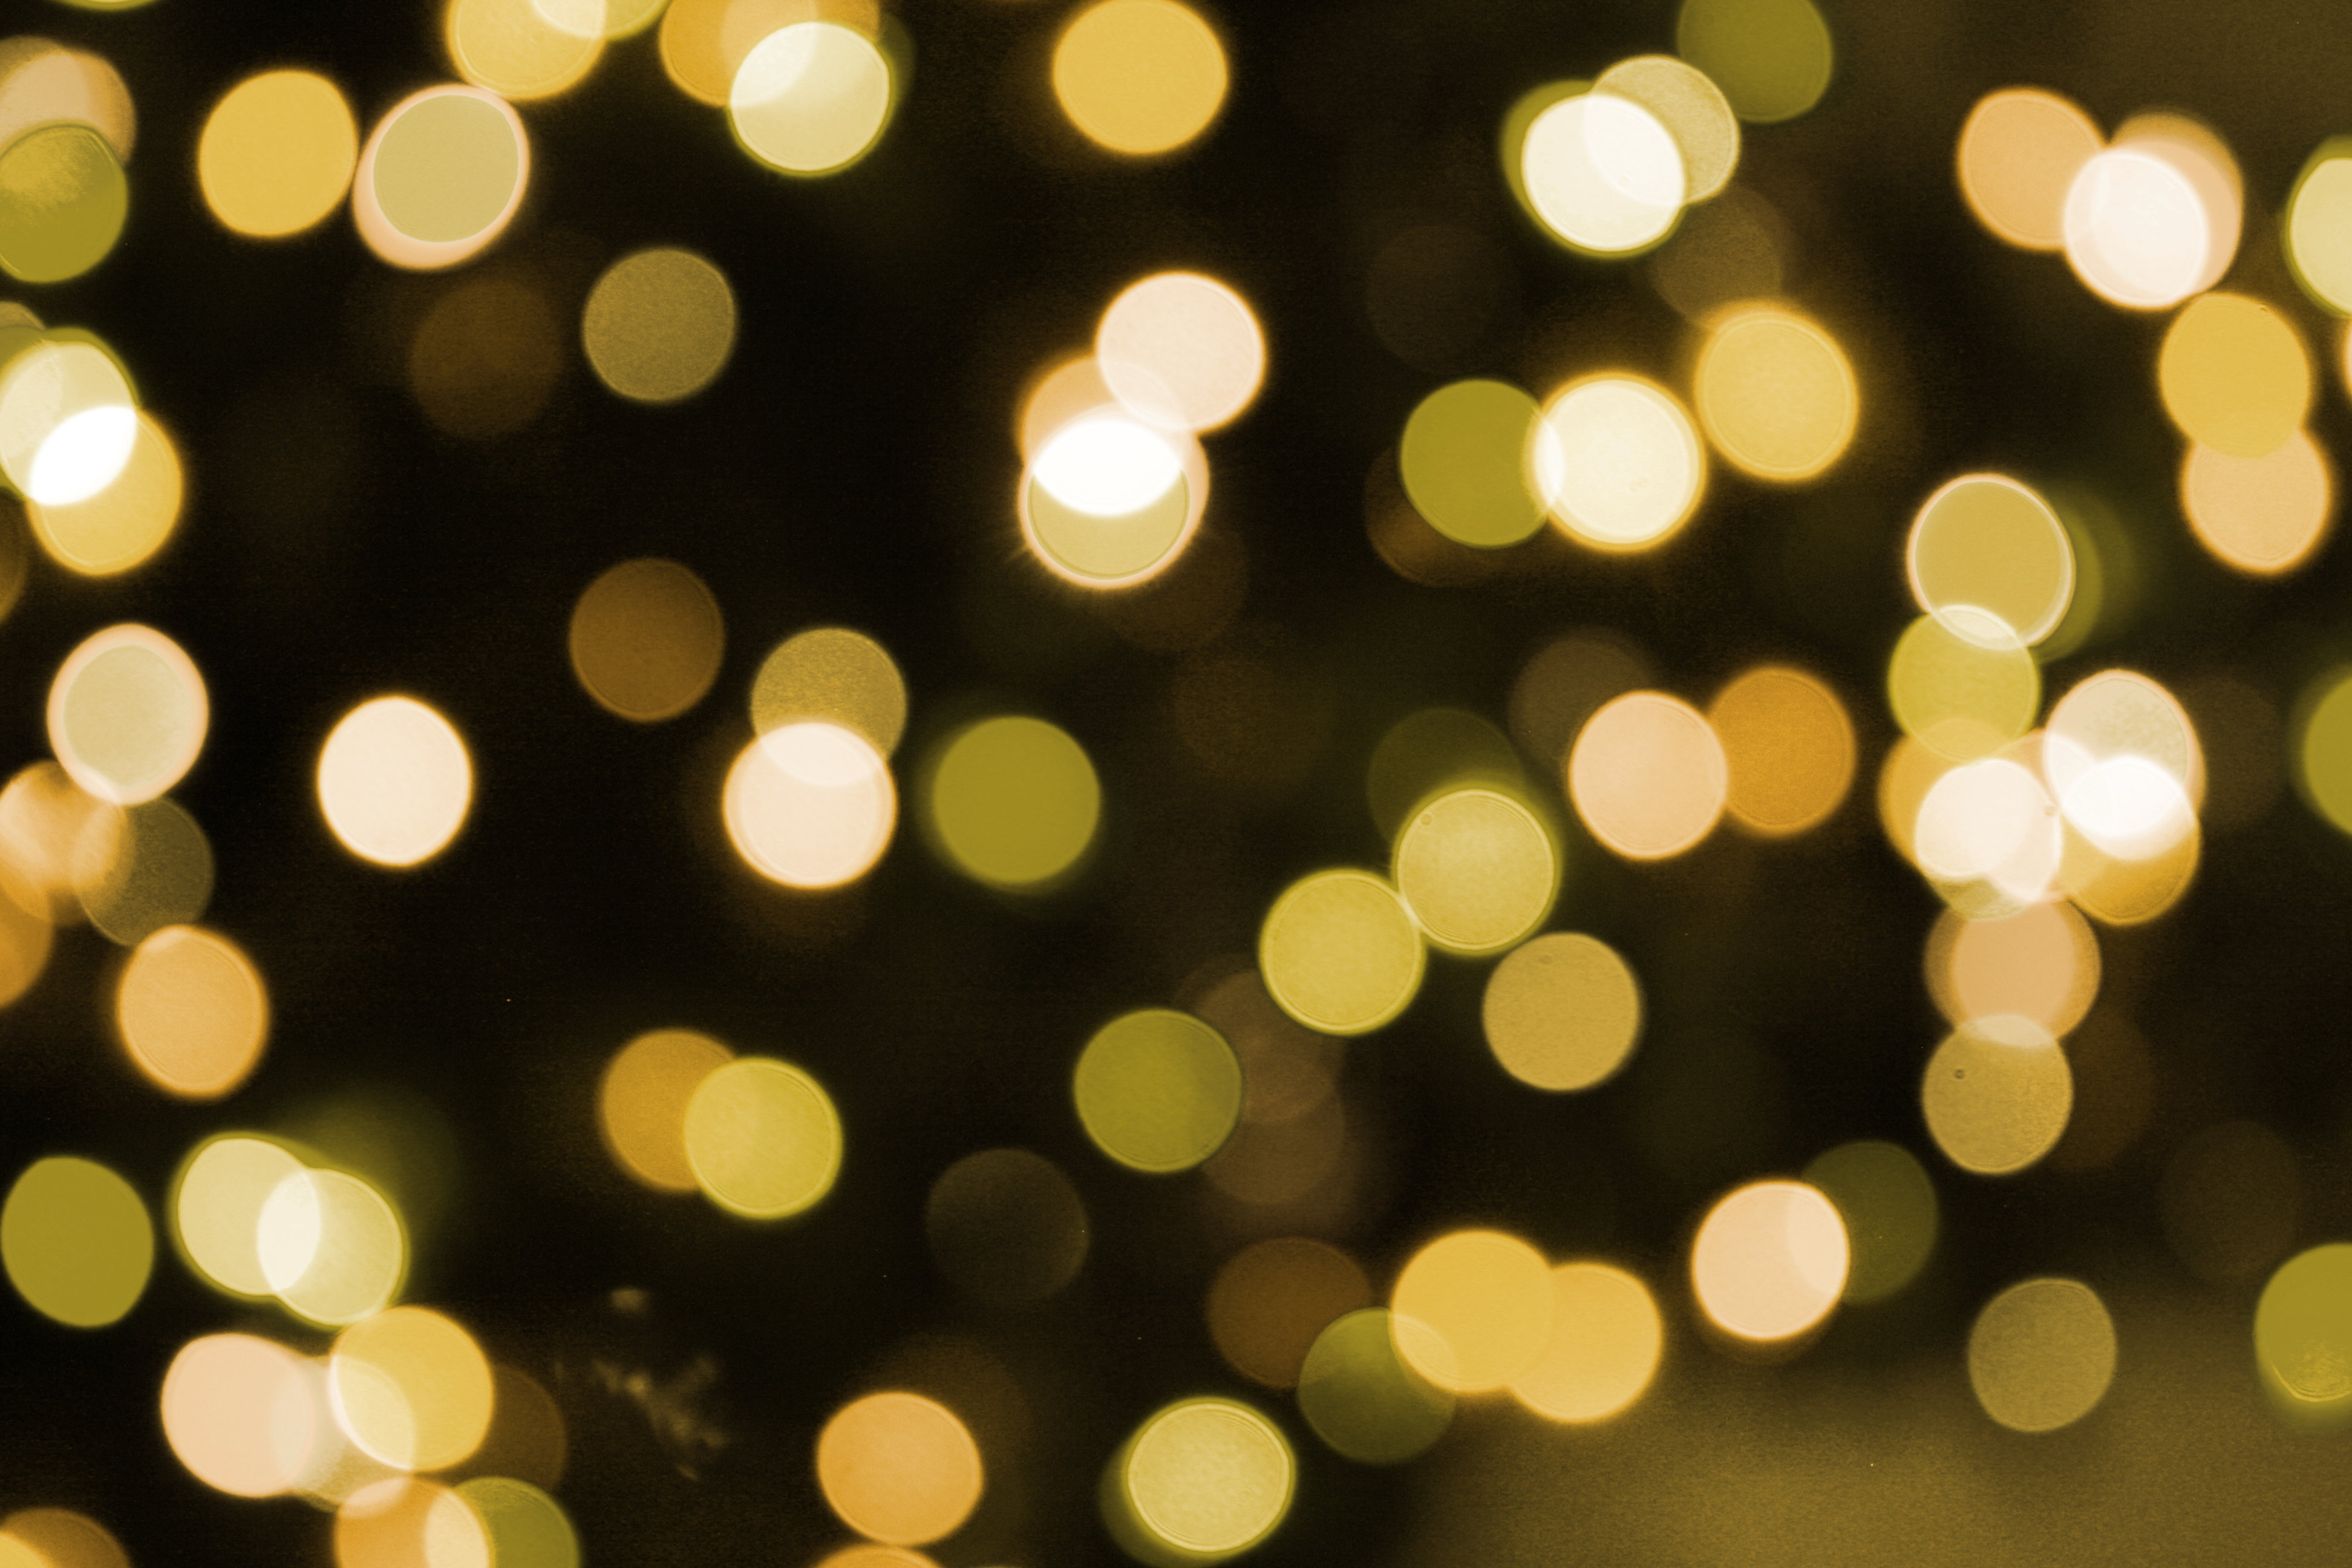 Soft Focus Gold Christmas Lights Texture Picture  Free